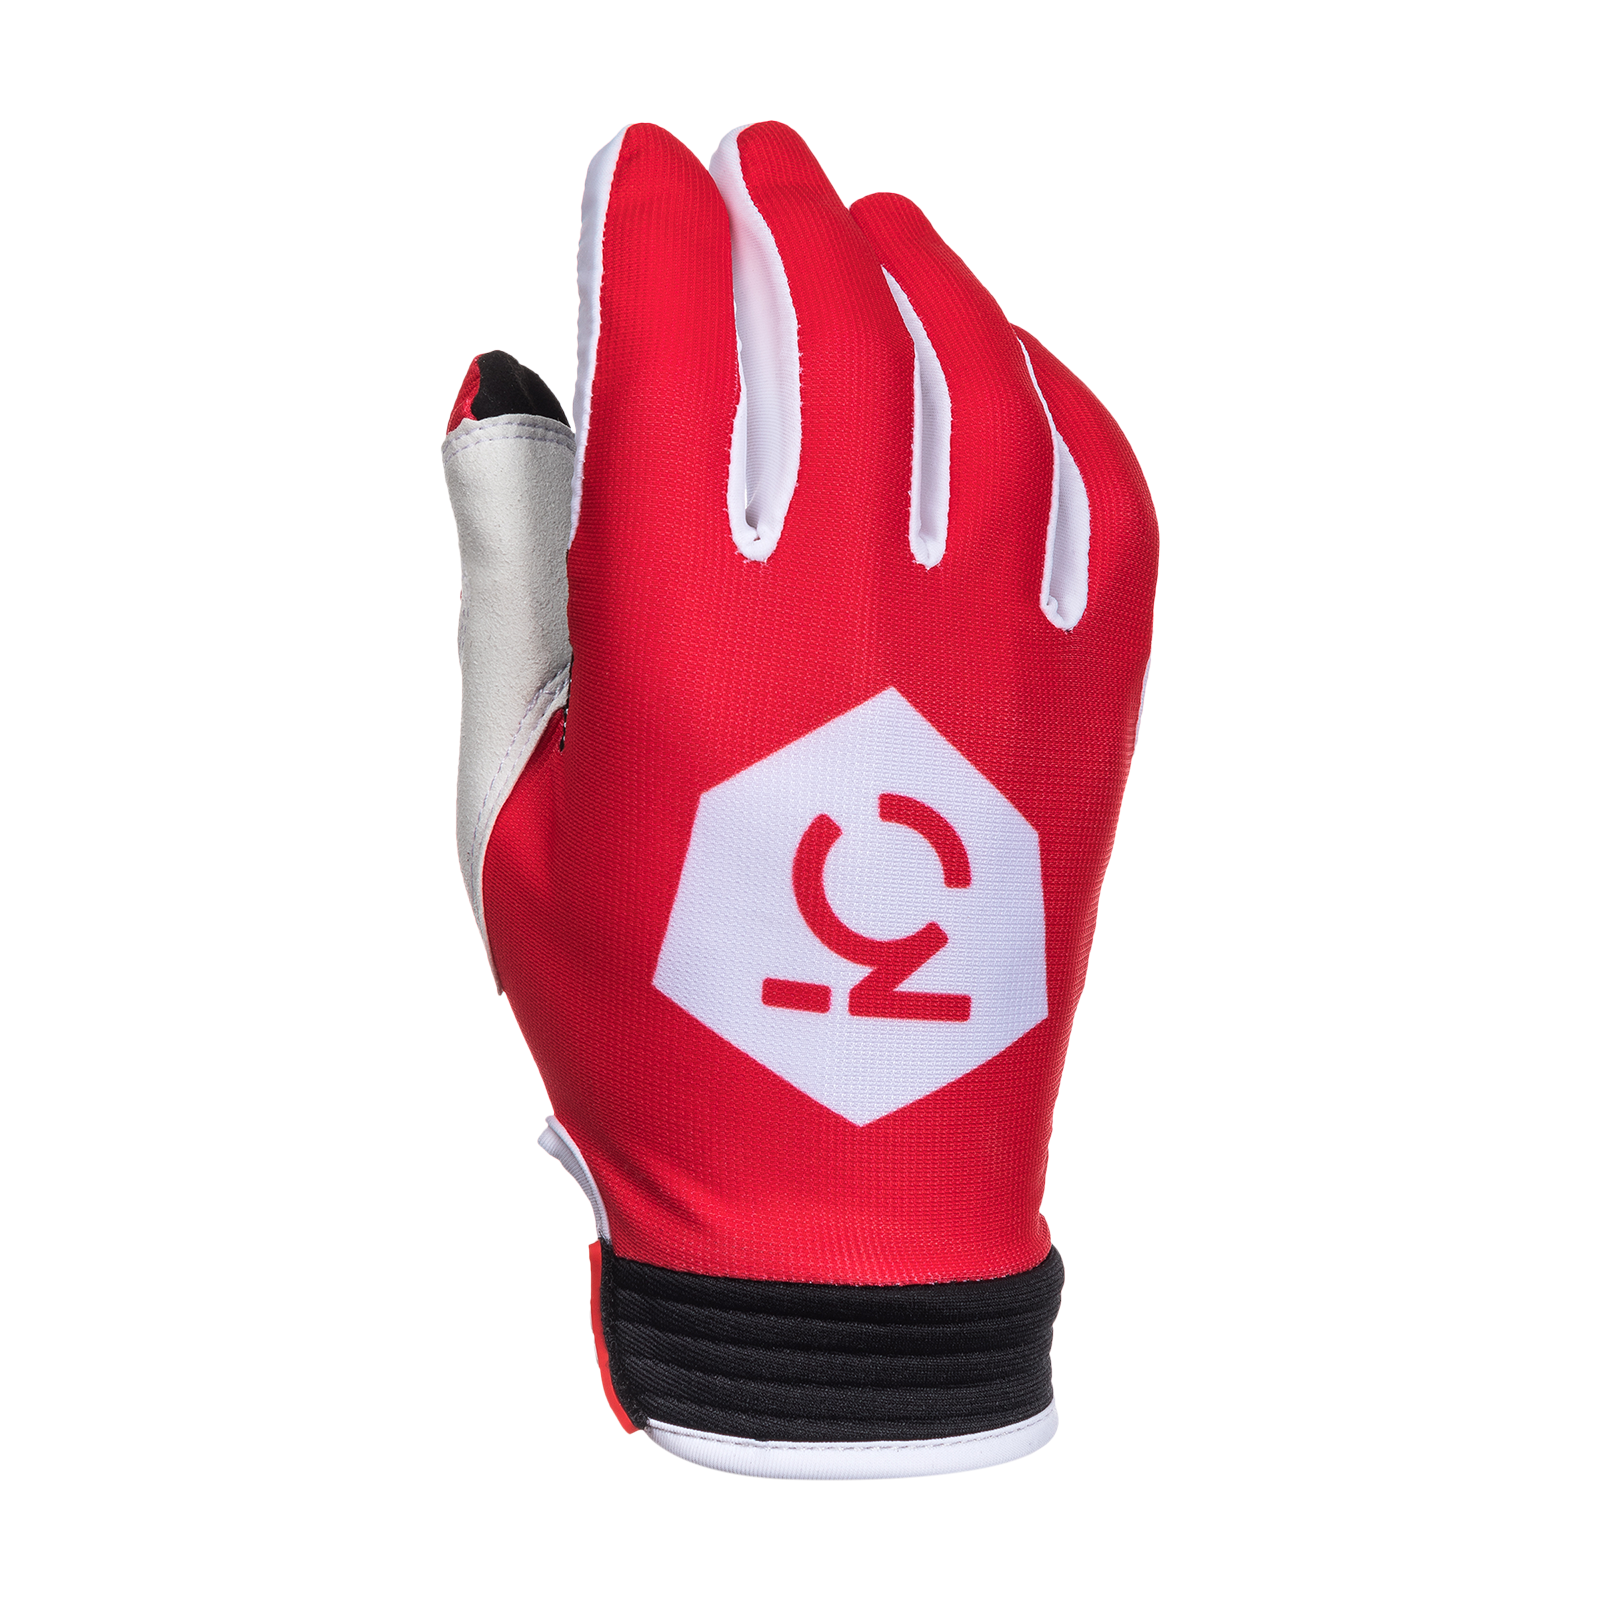 Sports gloves product image